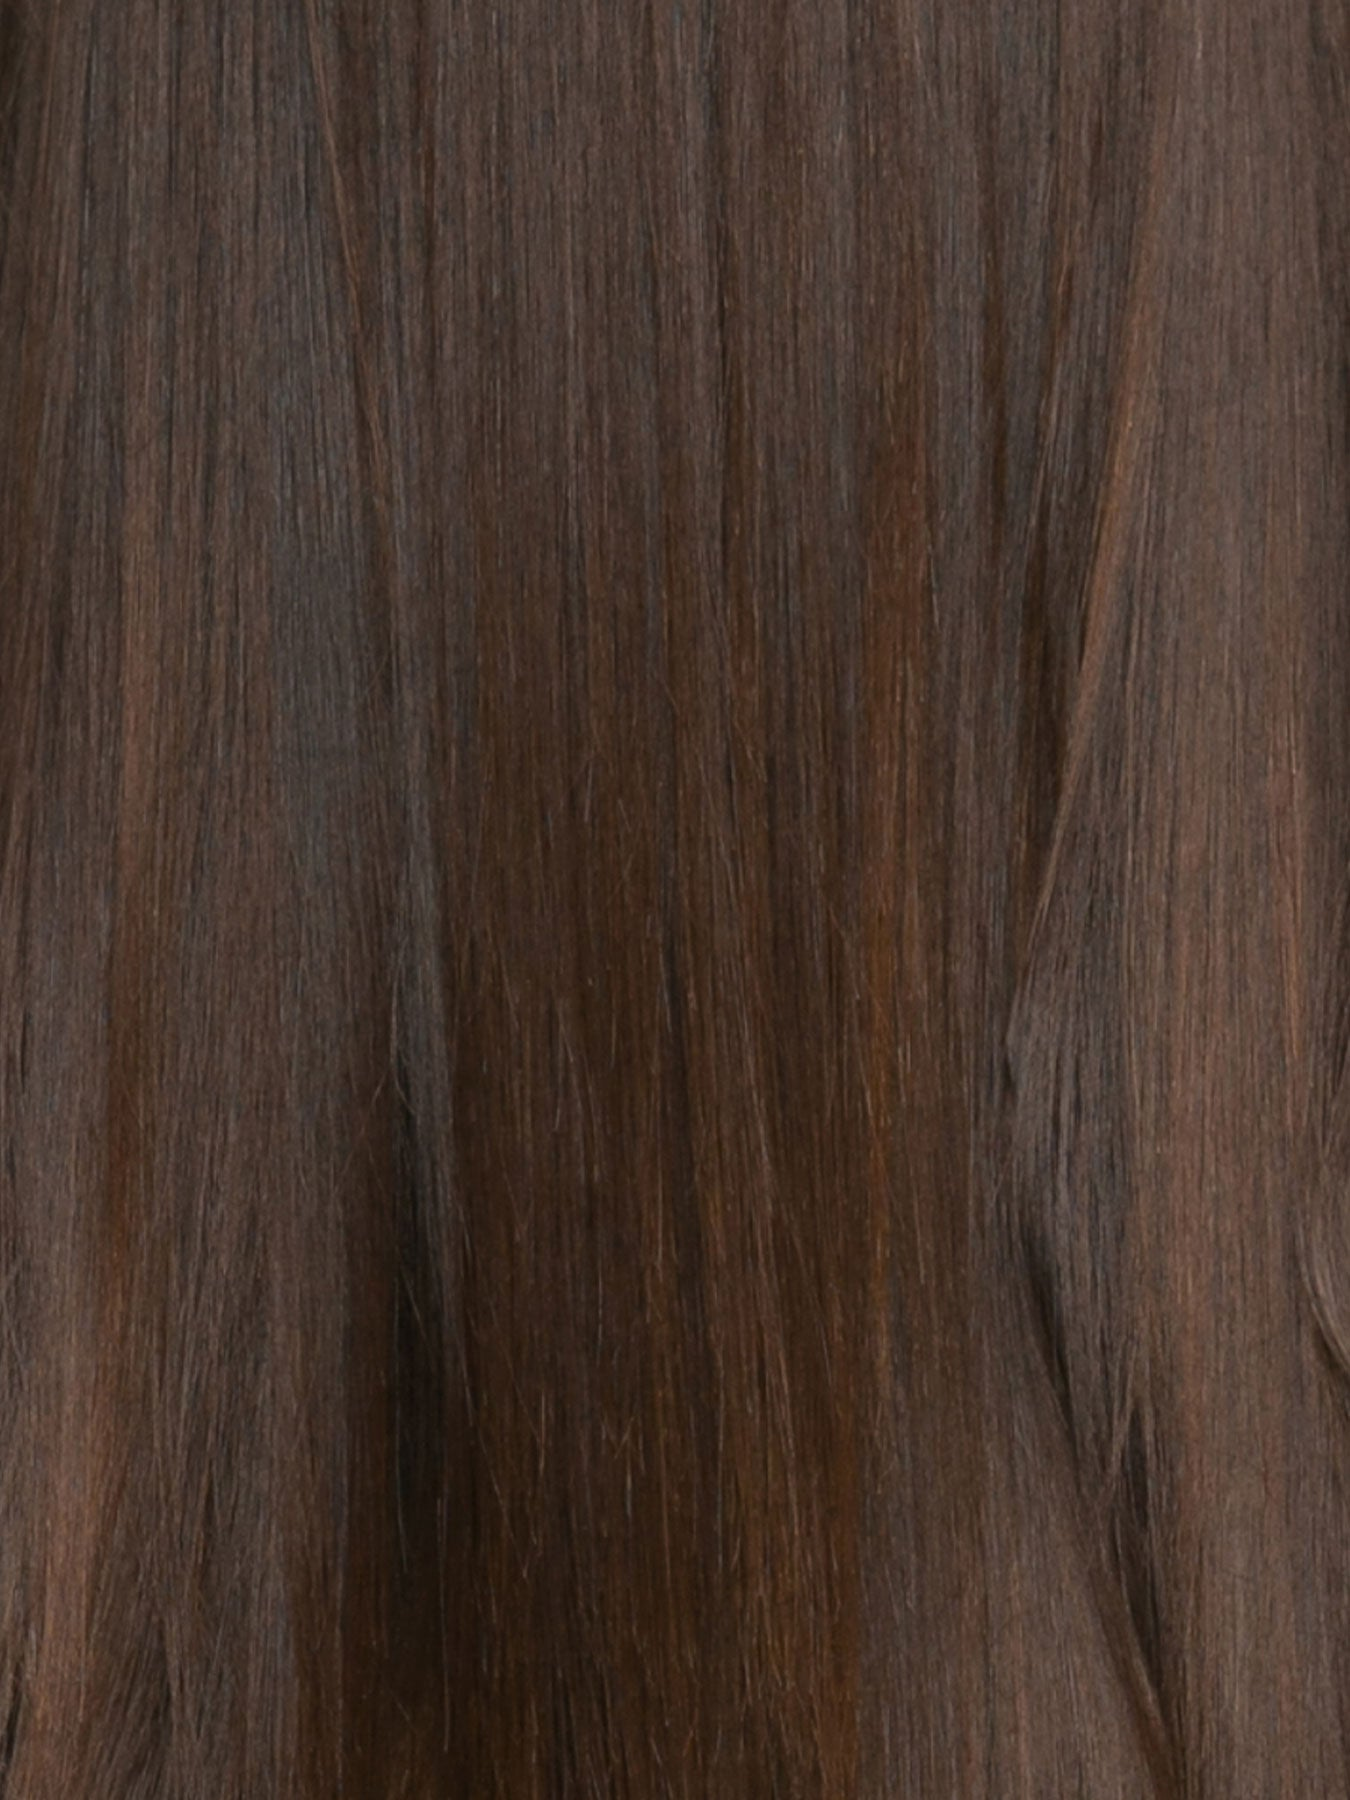 Cheryl 6 in 1 Mocha Brown